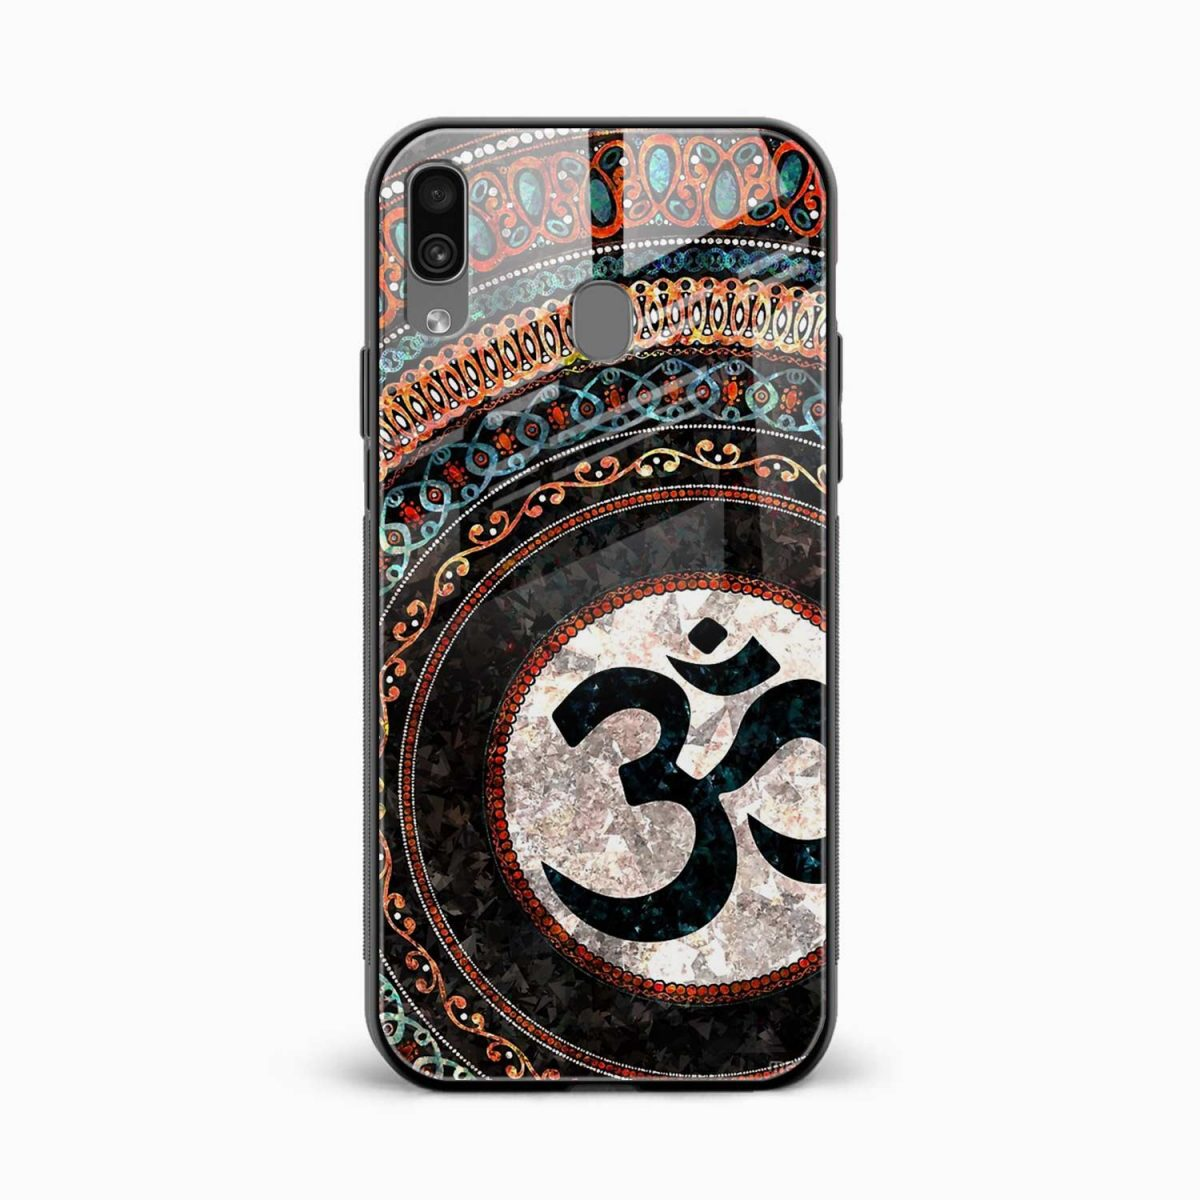 om glass front view samsung galaxy a30 back cover